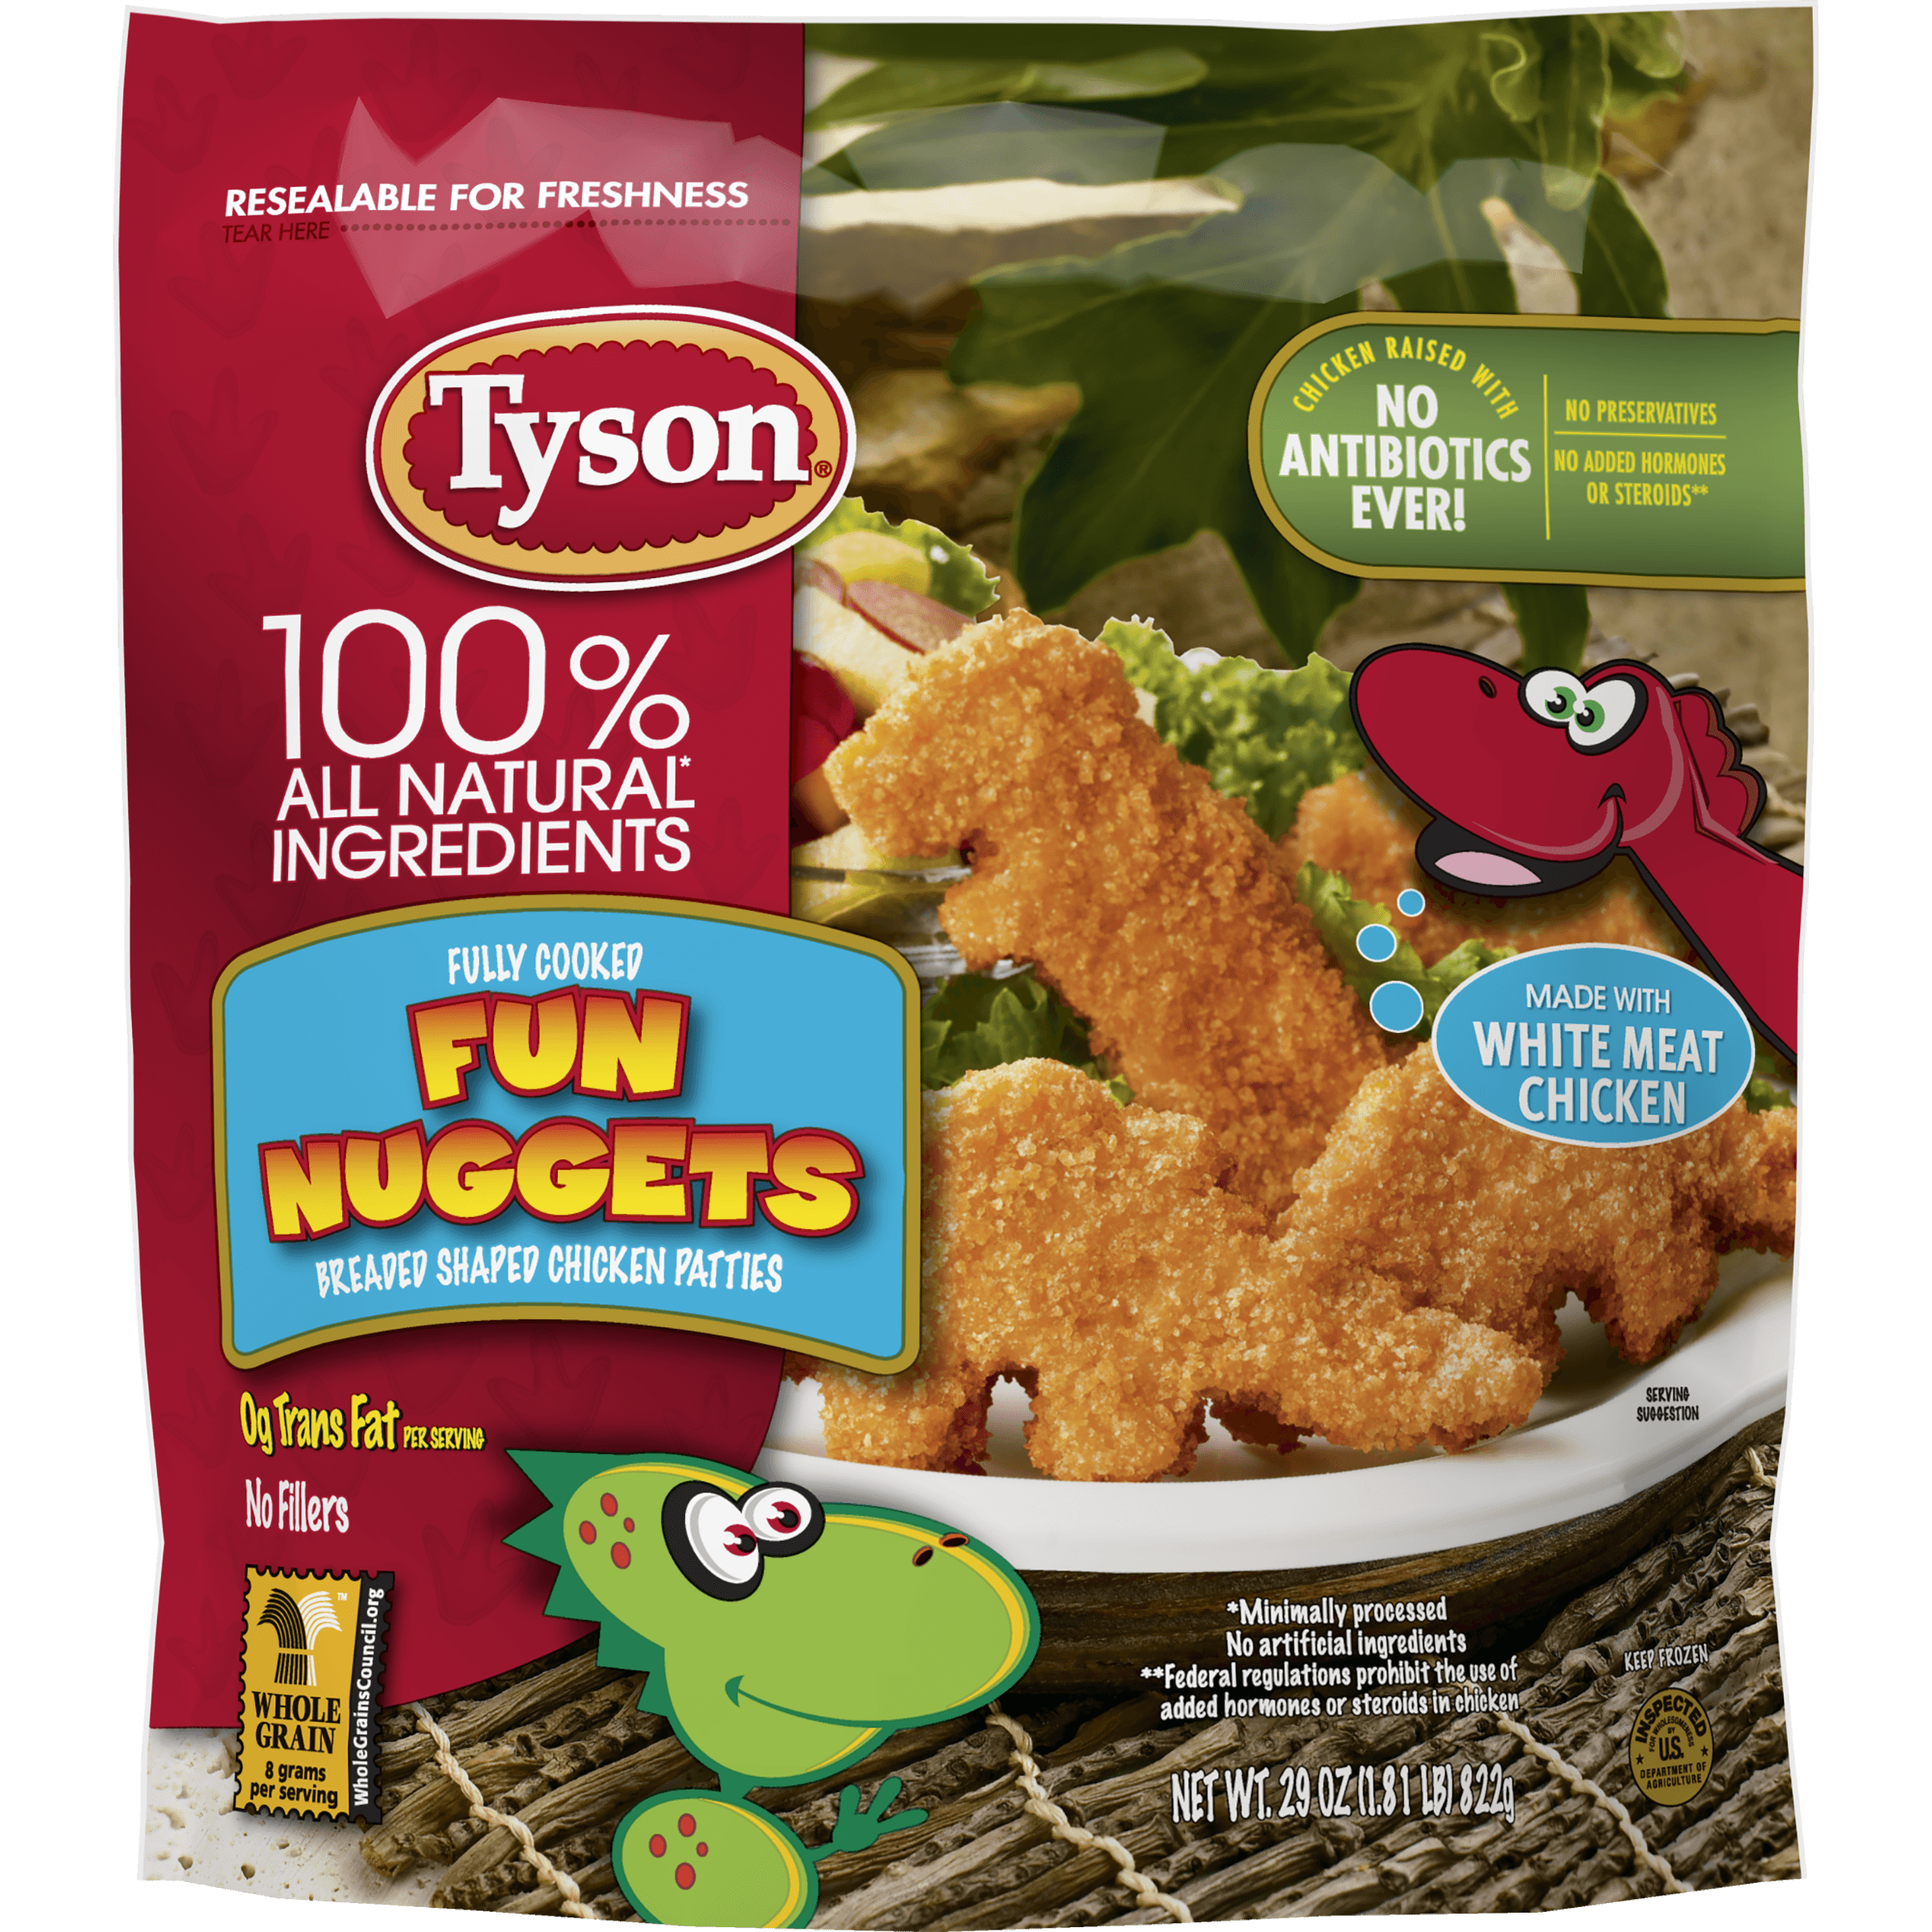 Tyson Dino Nuggets Nutrition Facts